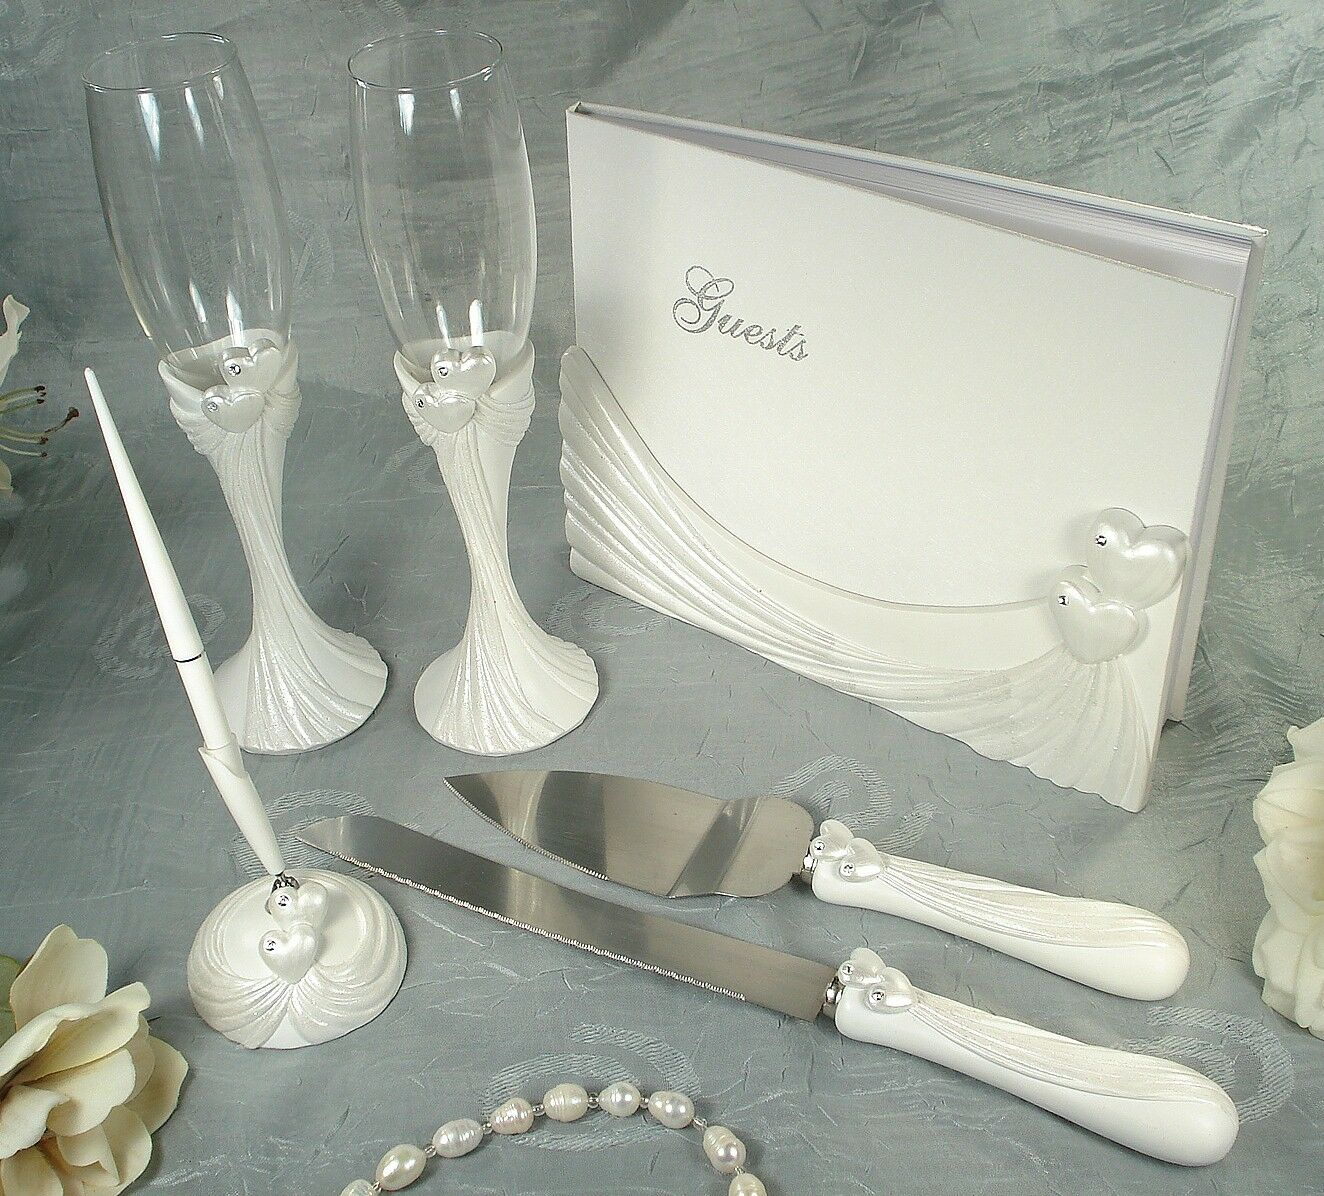 D'Lusso Guest Book, Toasting Flutes, Cake Set And Pen Set...